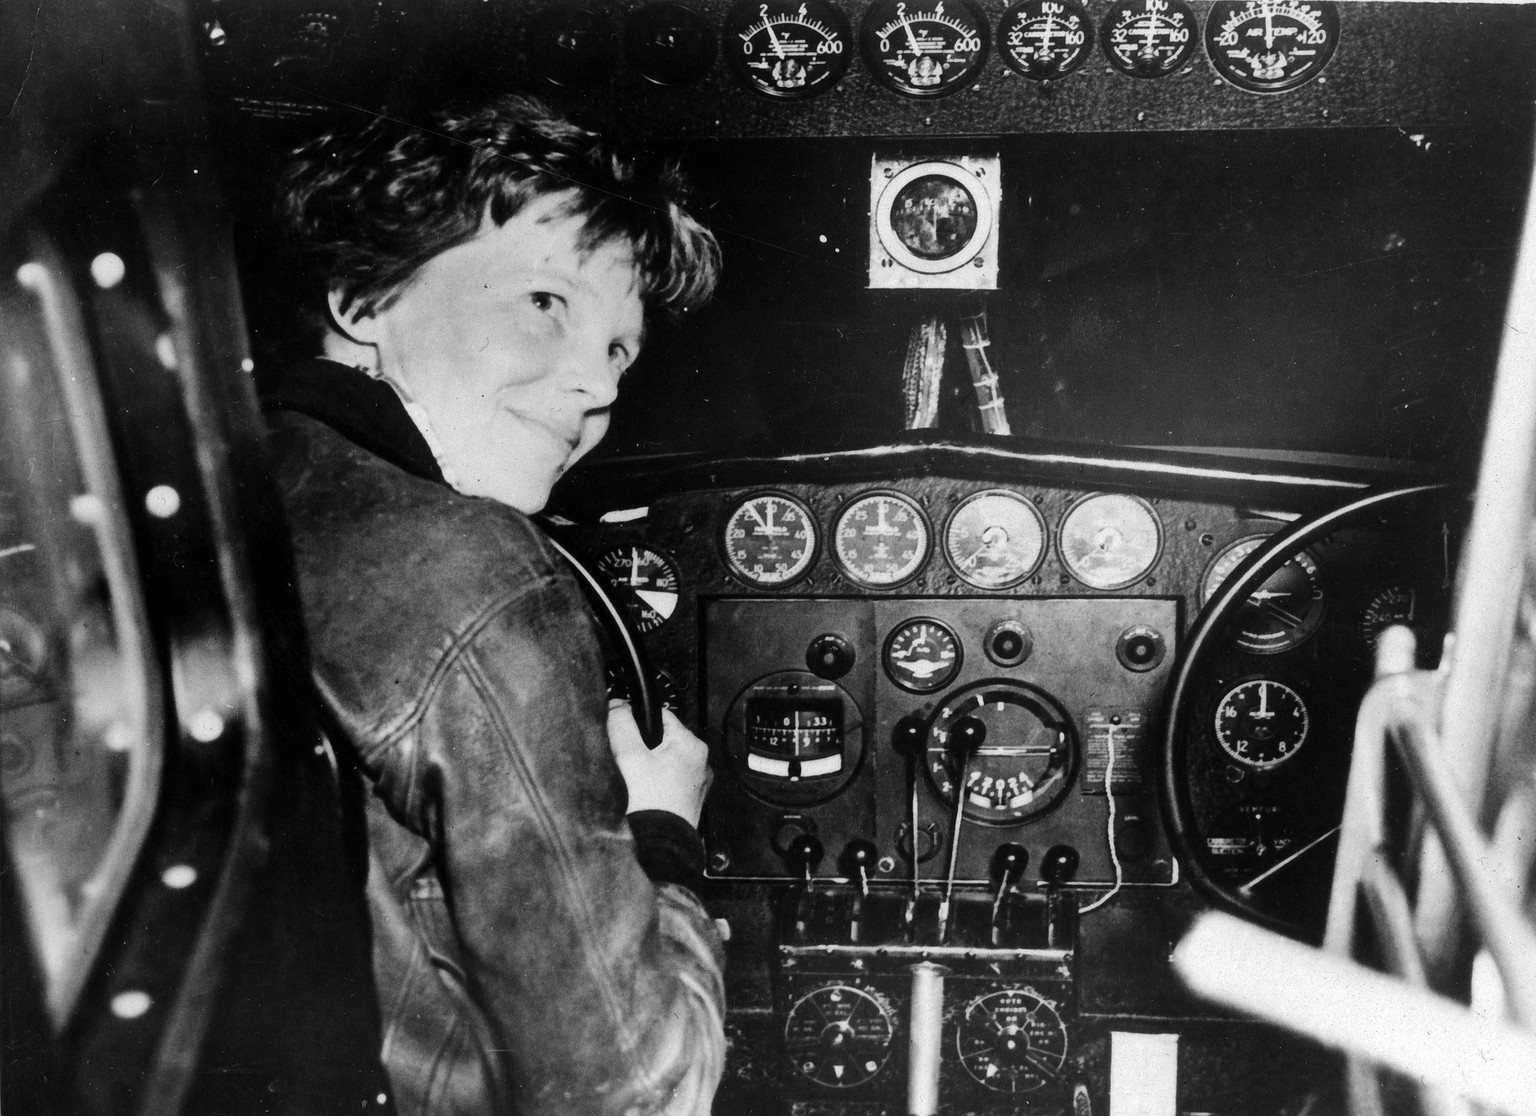 epa06591365 A handout photo made available by the National Archives showing US pilot Amelia Earhart 'prior to last take-off' which was in Lae, New Guinea 02 July 1937.  Earhart disappeared one day later on the same date 02 July 1937 after crossing the International Dateline and the mystery of what happened to Earhart and her navigator Fred Noonan has never been solved. It's been 80 years since Earhart and Noonan vanished on a round-the-world flight. Media reports on 09 March 2018 state that Bones found on a island of Nikumaroro in 1940 in the South Pacific were likely those of US pilot Amelia Earhart, a new study by Richard Jantz, an emeritus anthropology professor at the University of Tennessee, found. *** Local Caption *** 53631092  EPA/NATIONAL ARCHIVES / HANDOUT HAND  HANDOUT EDITORIAL USE ONLY/NO SALES *** Local Caption *** 53631092